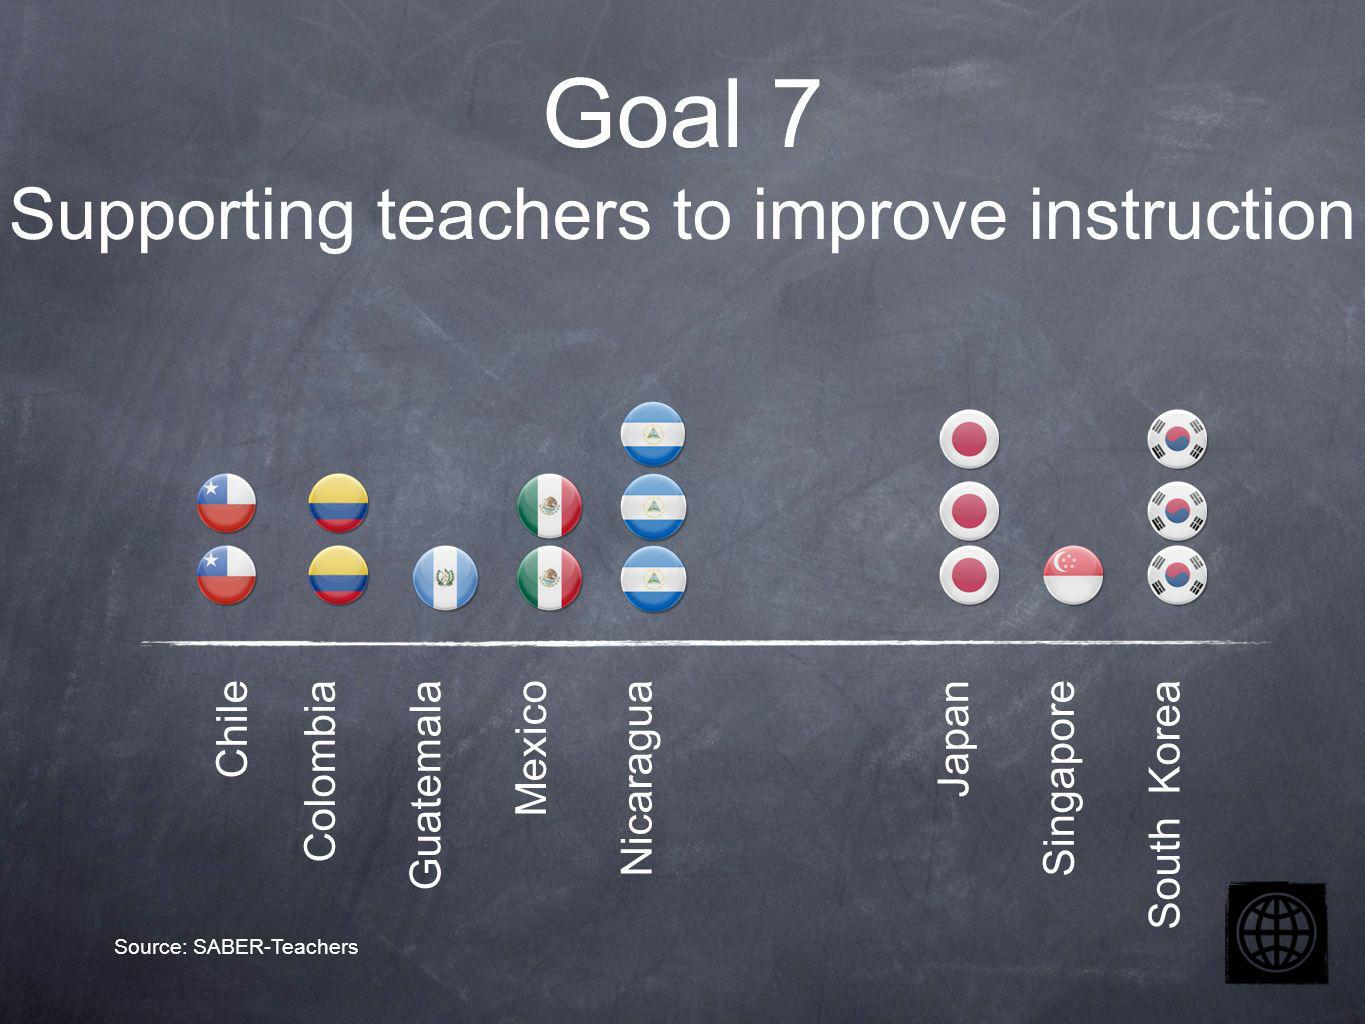 Chile Colombia Guatemala Mexico Nicaragua Japan Singapore South Korea Goal 7 Supporting teachers to improve instruction Source: SABER-Teachers